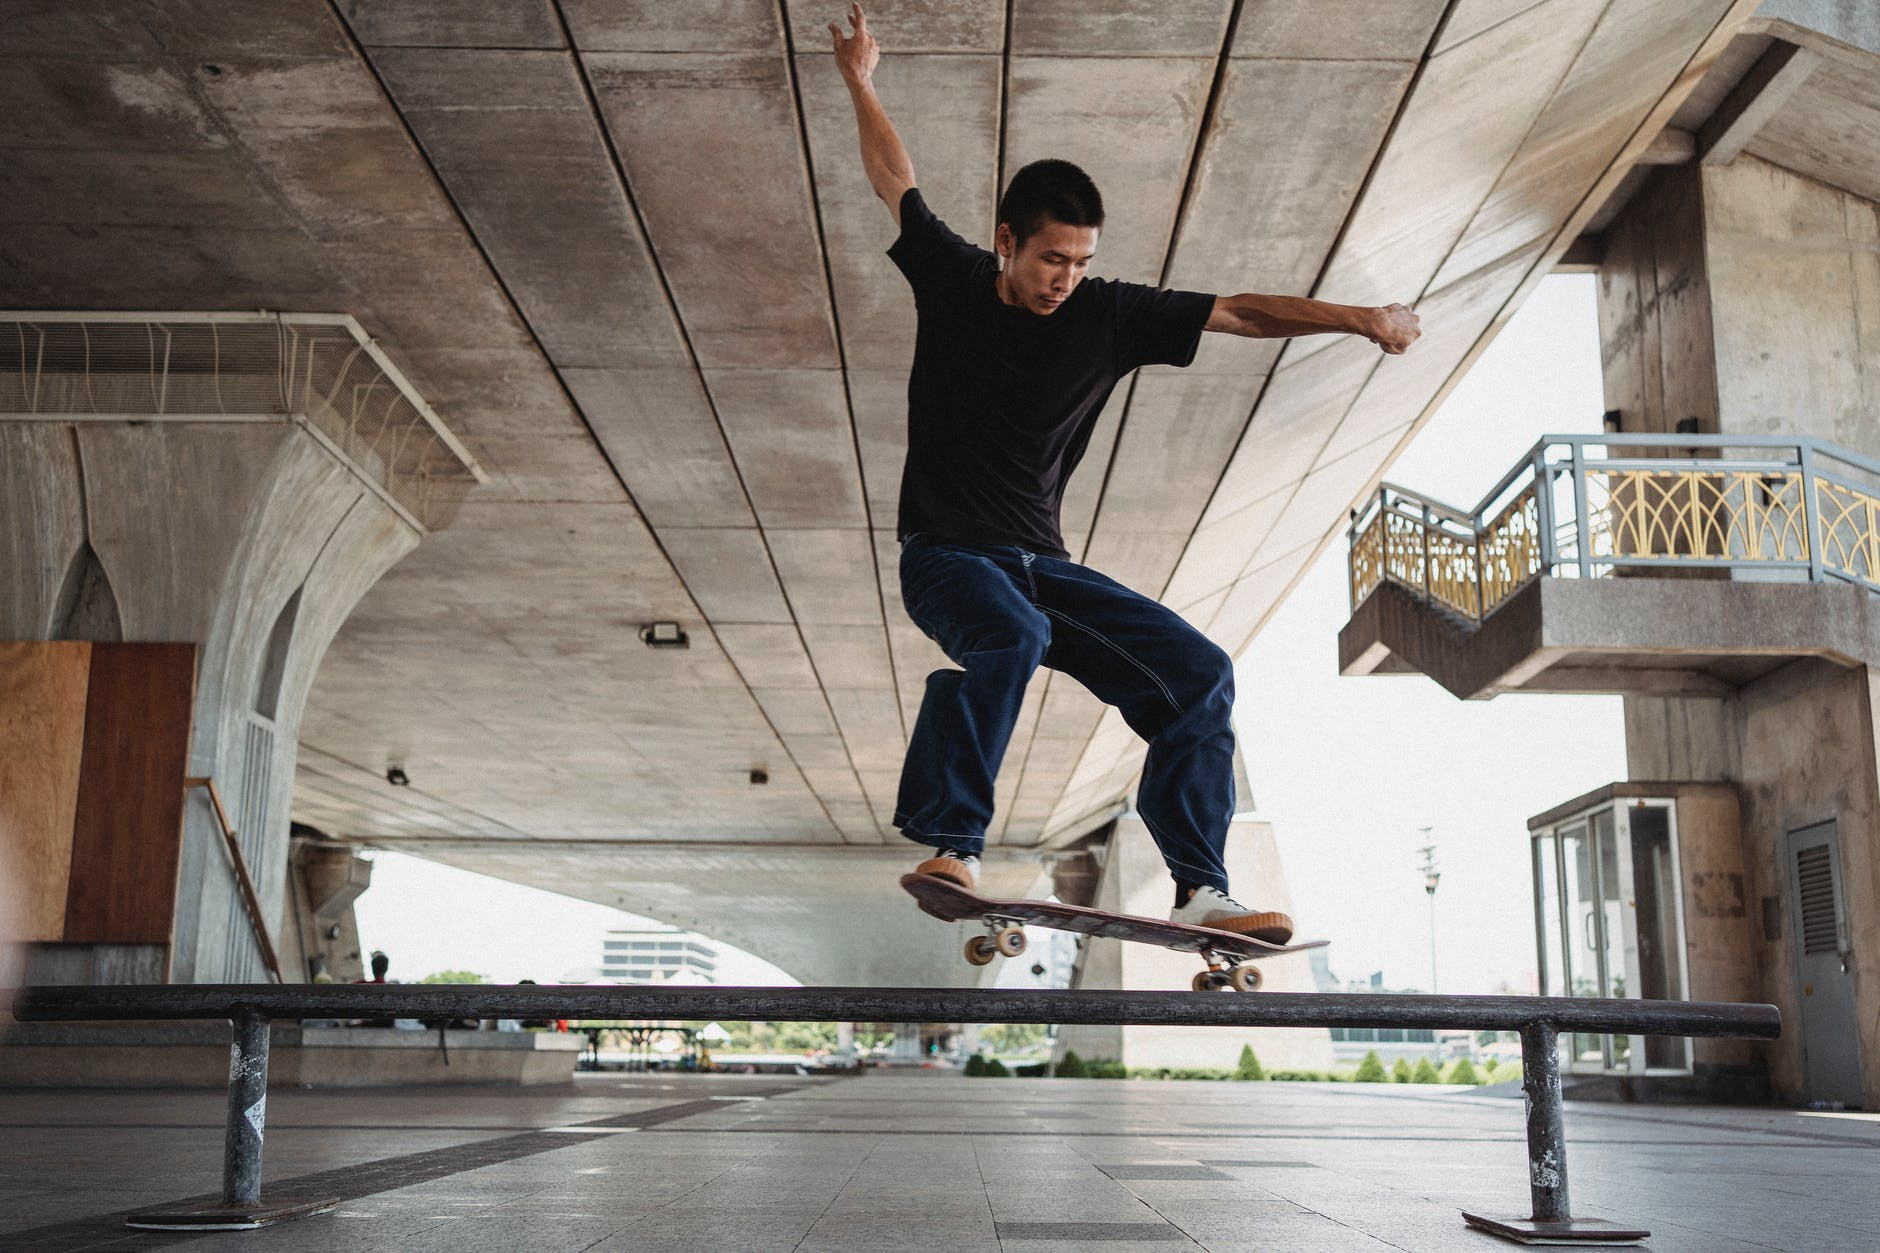 active asian man performing trick on railing